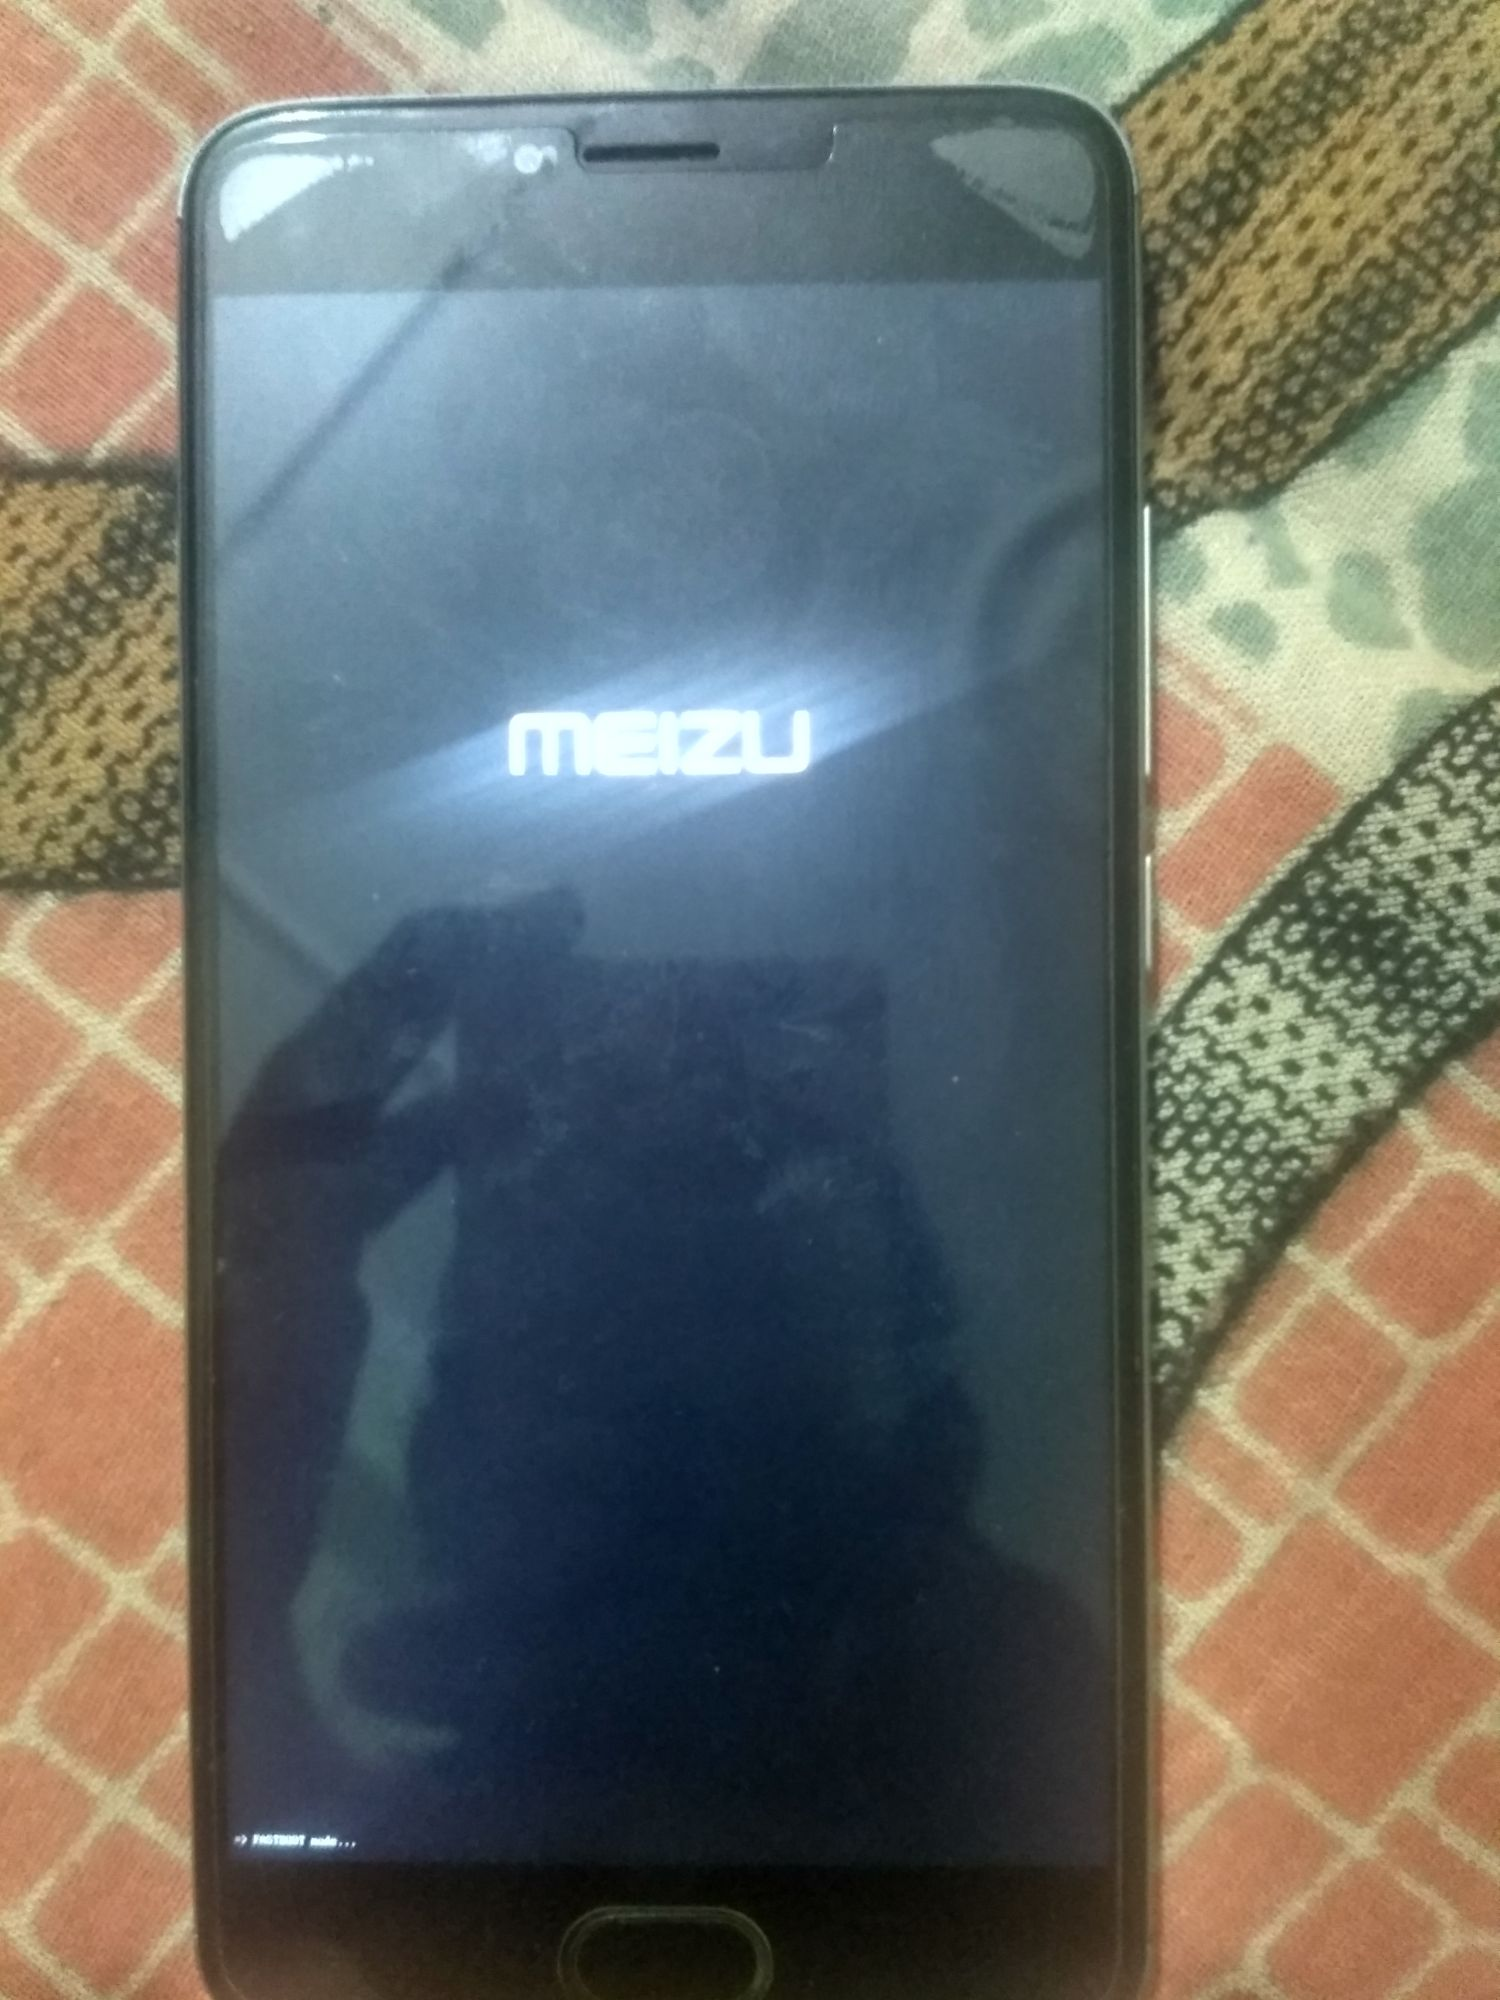 I've bricked my M3 note  [ unbrick help request ]-Flyme